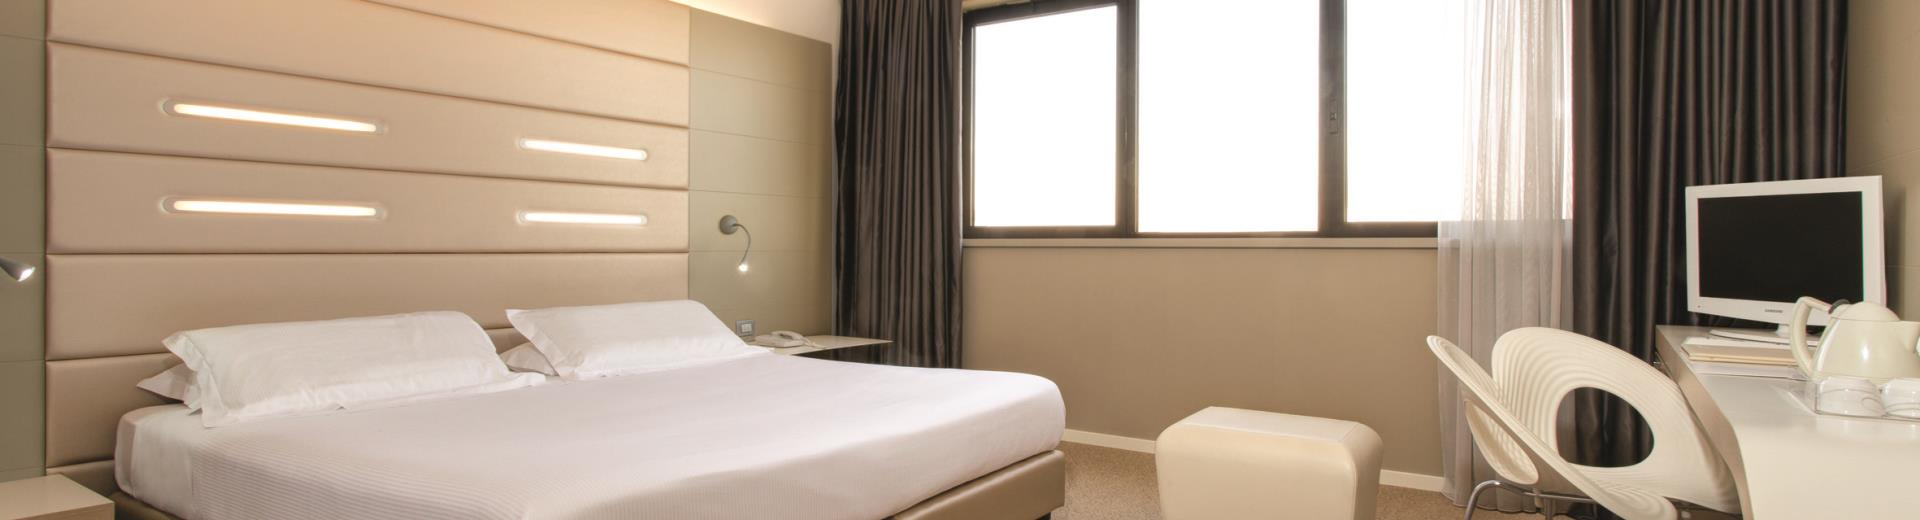 Le Camere - Best Western Plus Tower Hotel